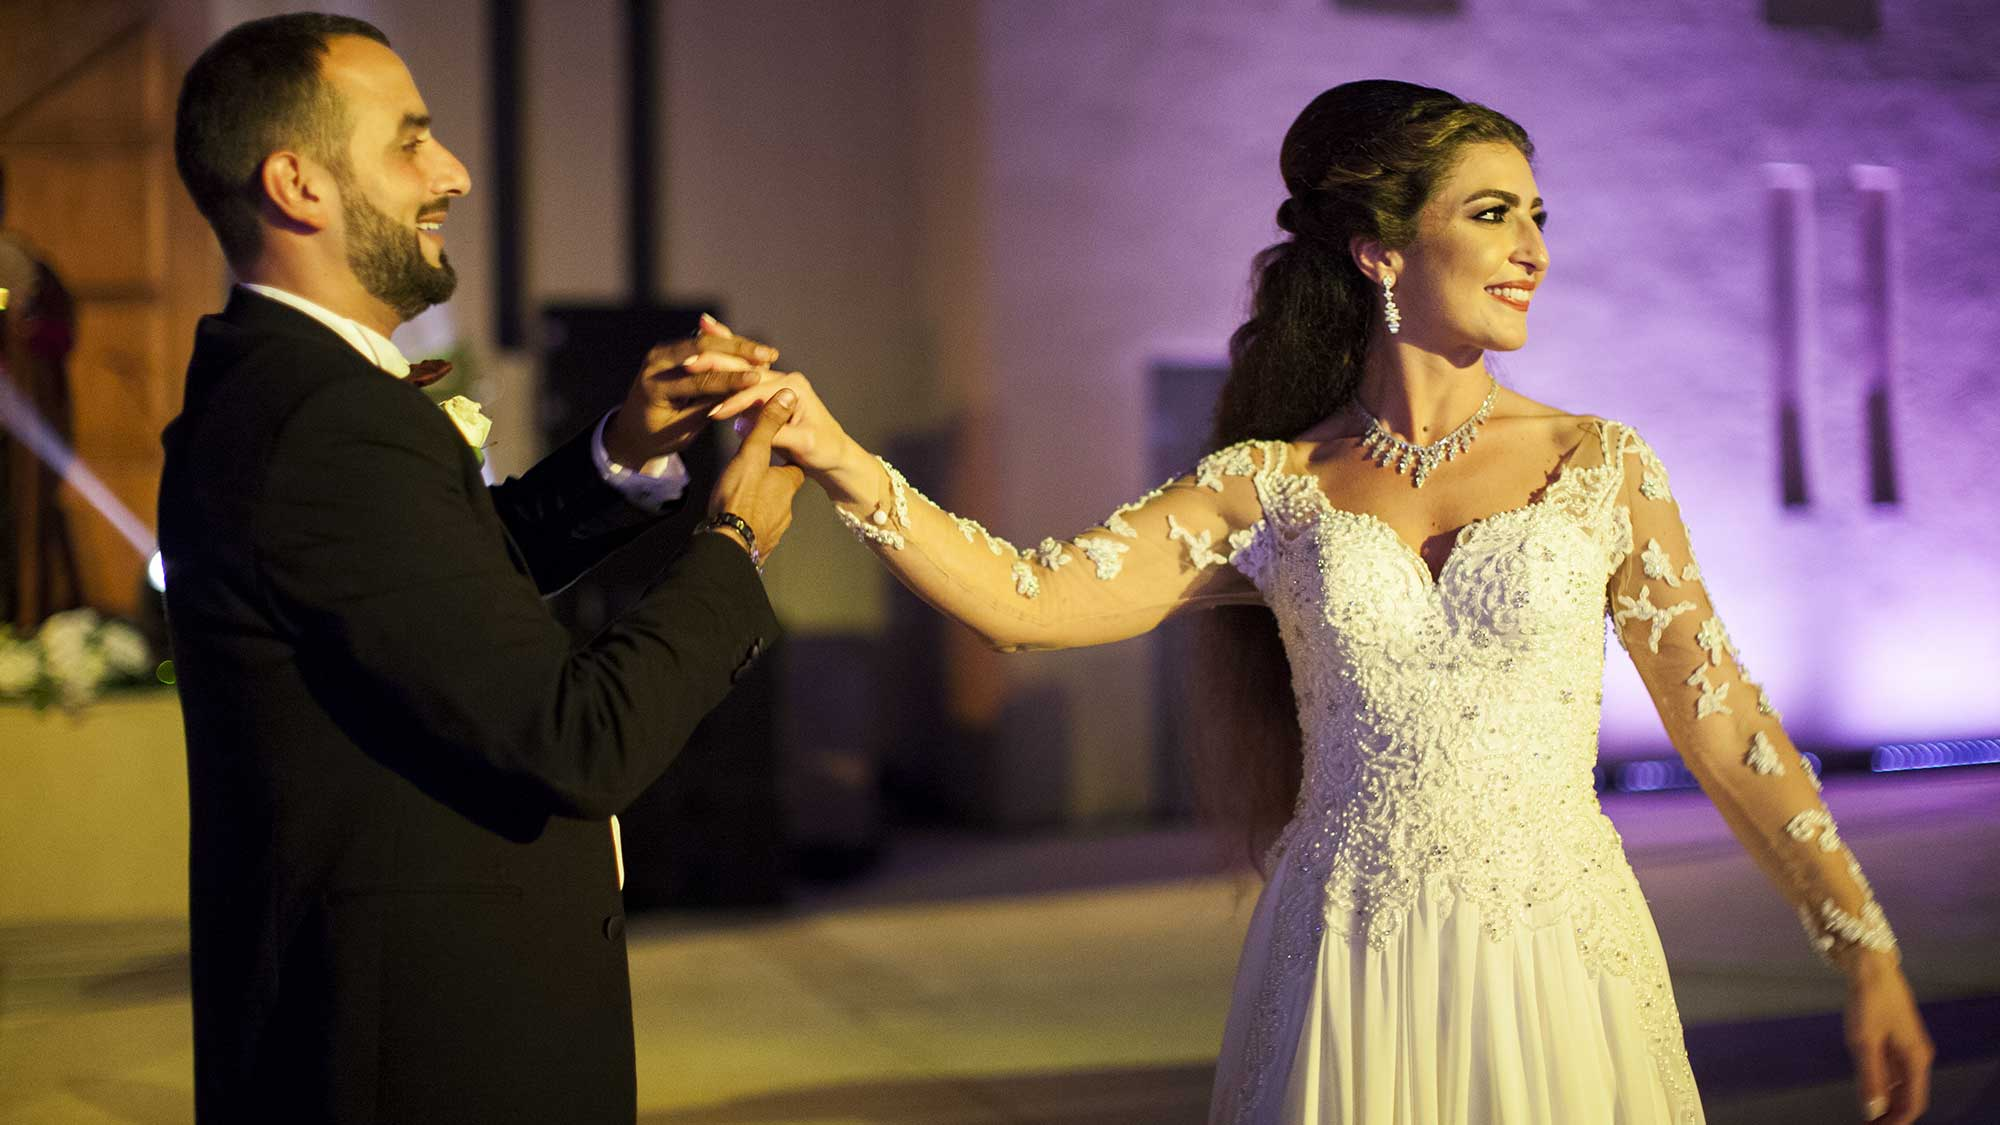 dubai_wedding_0024